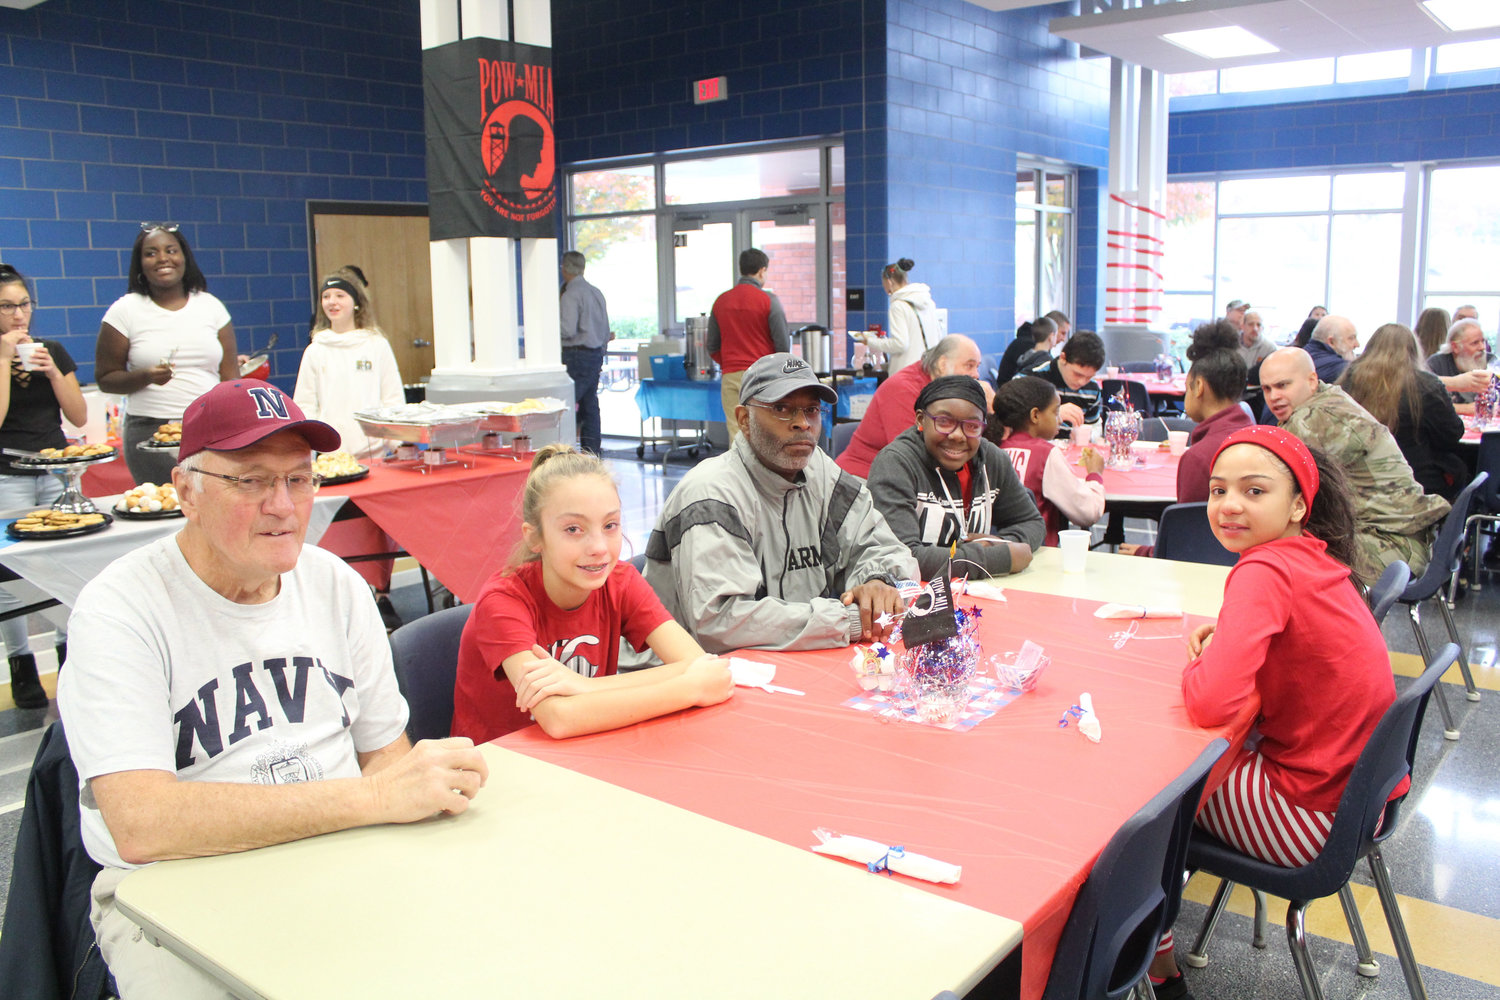 Harold Pomraning, Cassidy Pomraning, Wayne V. Cooley Sr., Peyton Chisholm and Heidy Castillo eat breakfast at MAMS as part of the Veterans Day program on Nov. 9.